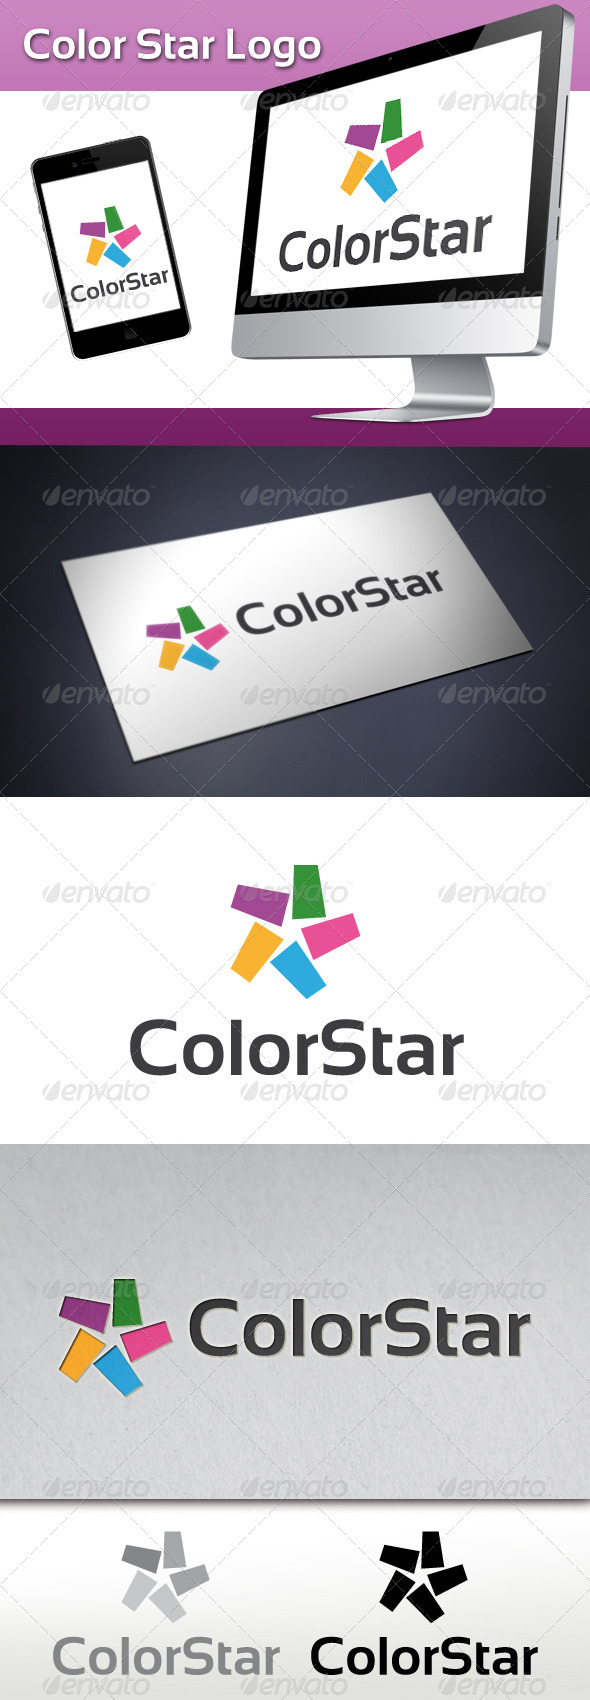 Color Star Logo - Abstract Logo Templates